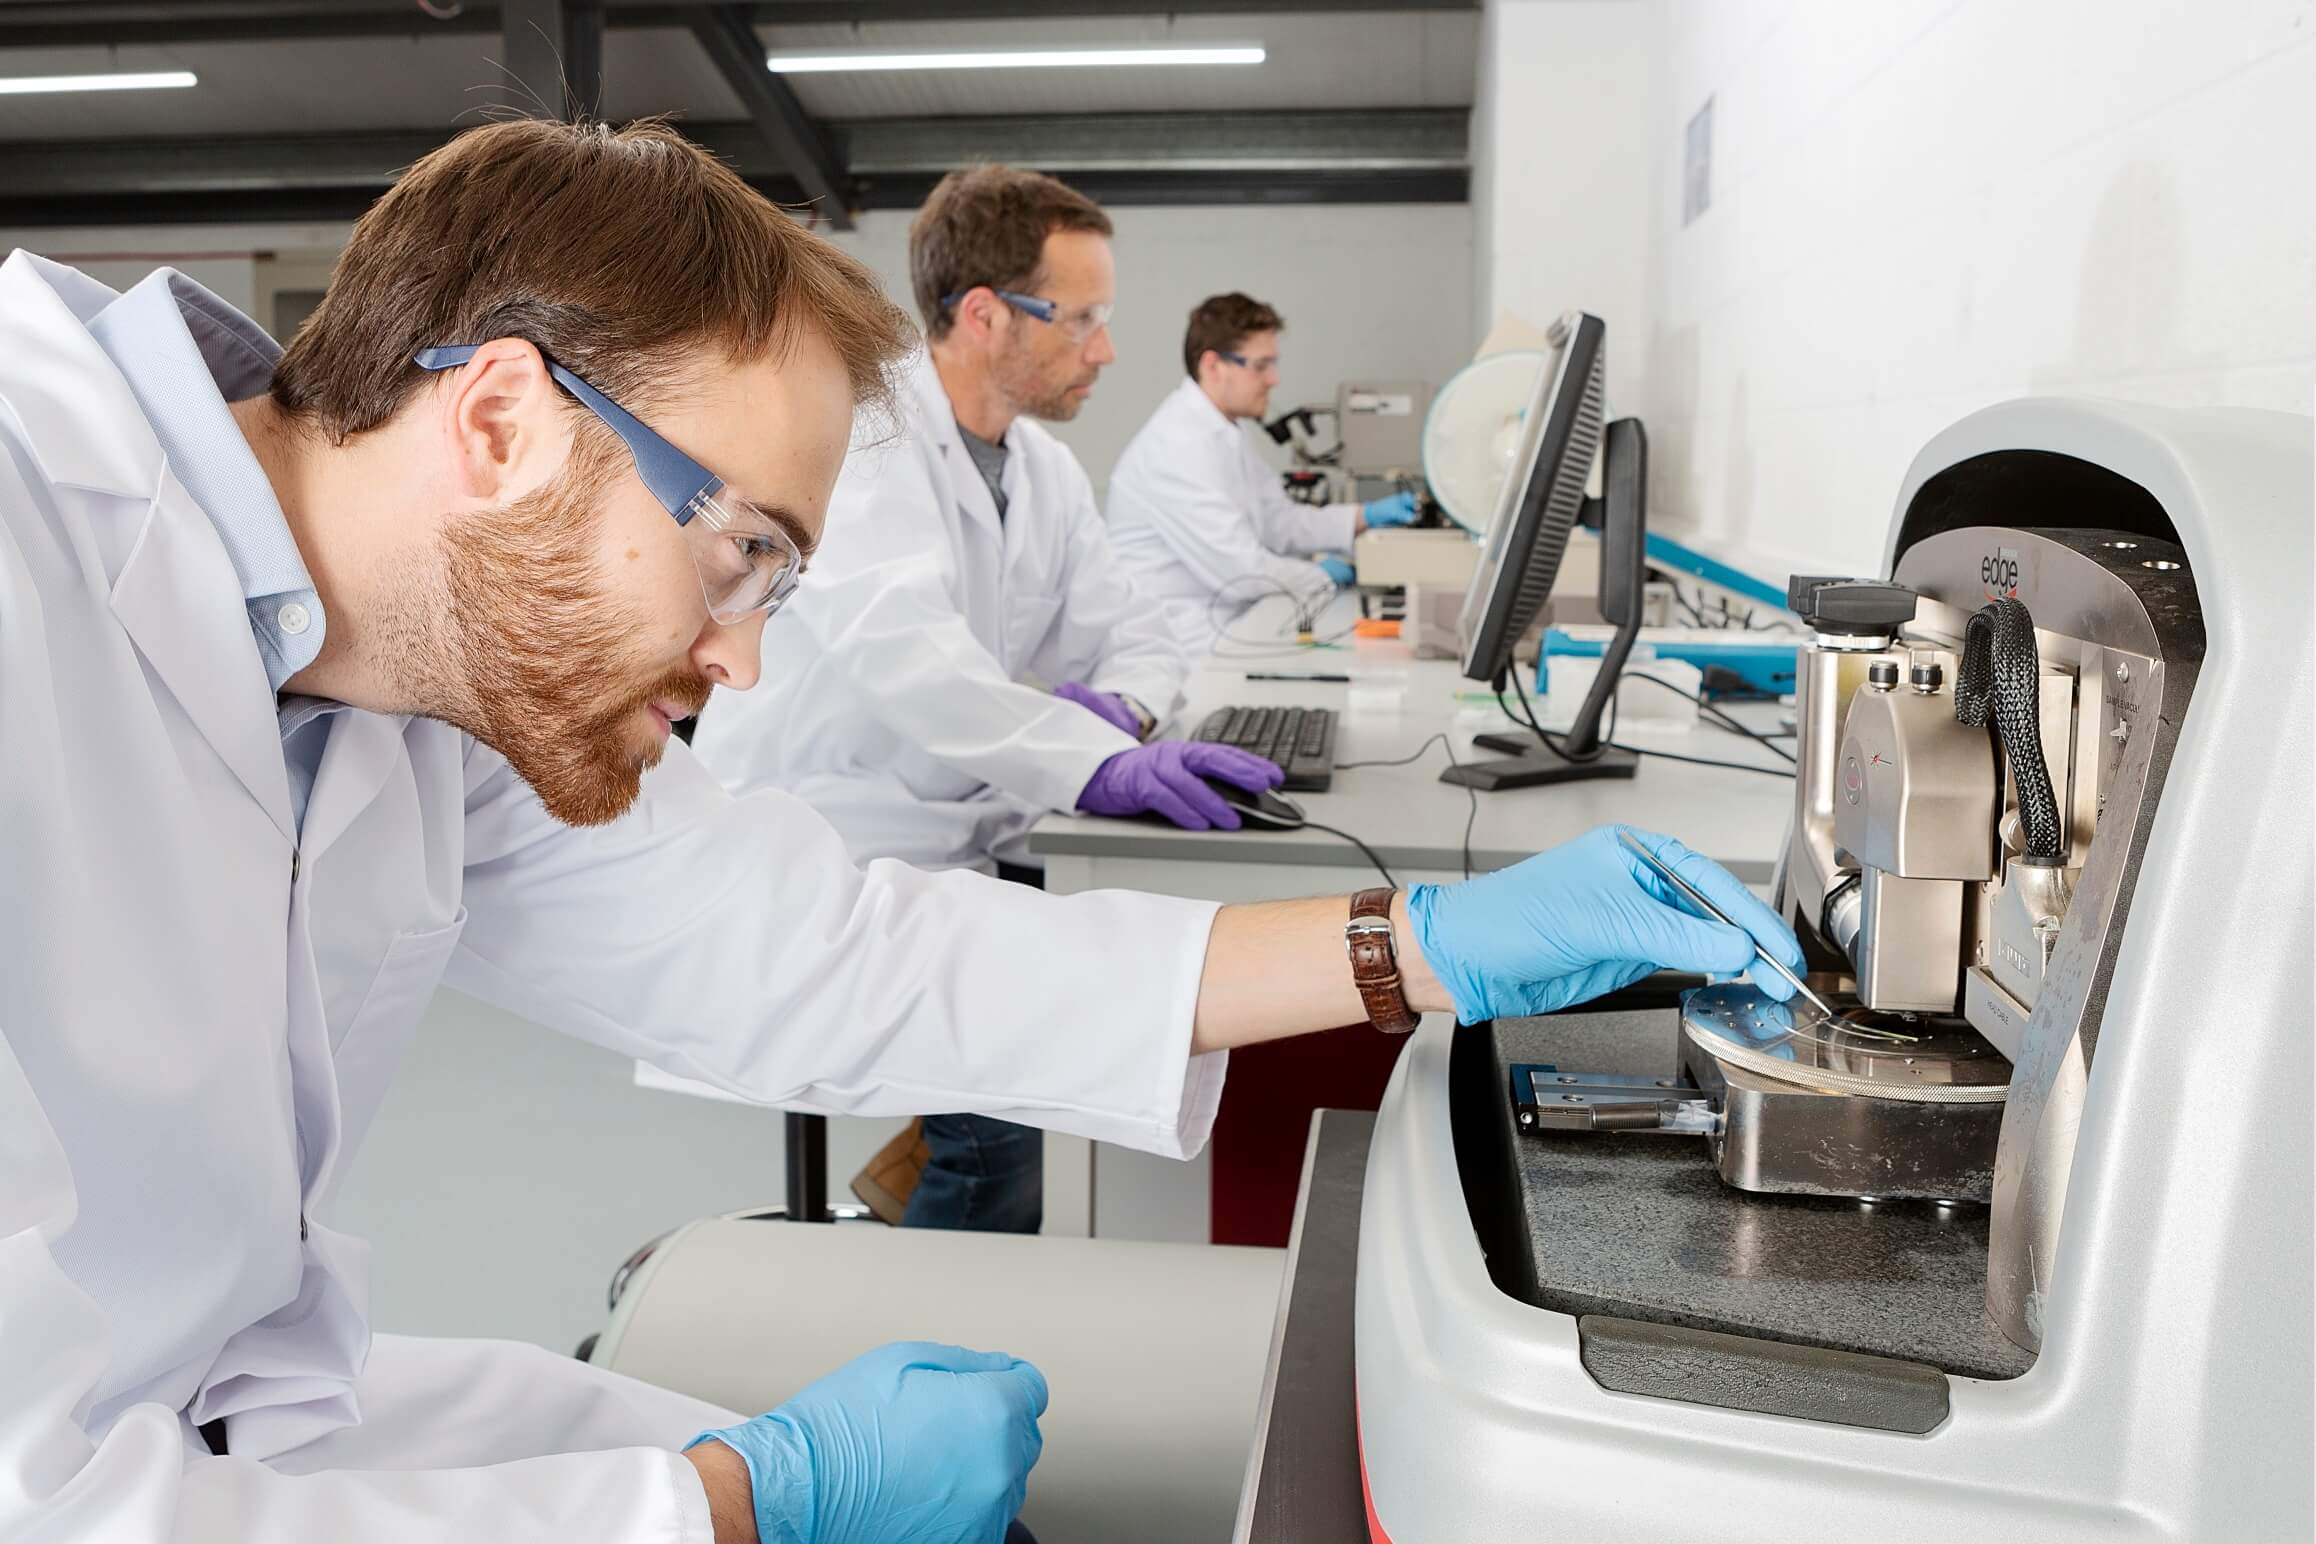 Paragraf at number 1 in 'Top 10 UK graphene companies' list